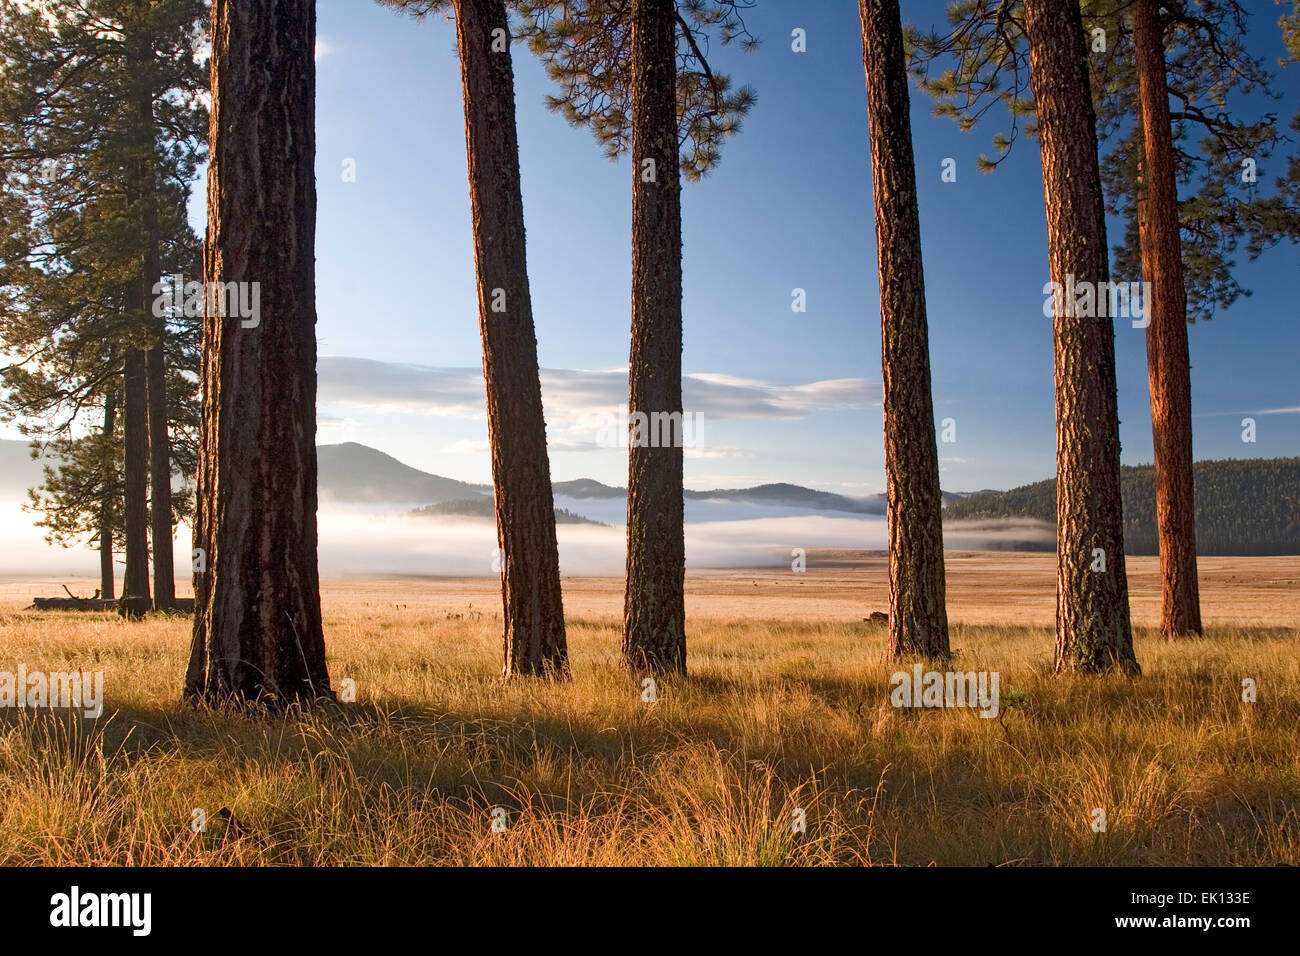 300-400 yr-old trees in 'History Grove', fog on Valle Grande, Valles Caldera National Preserve, near Los - Stock Image